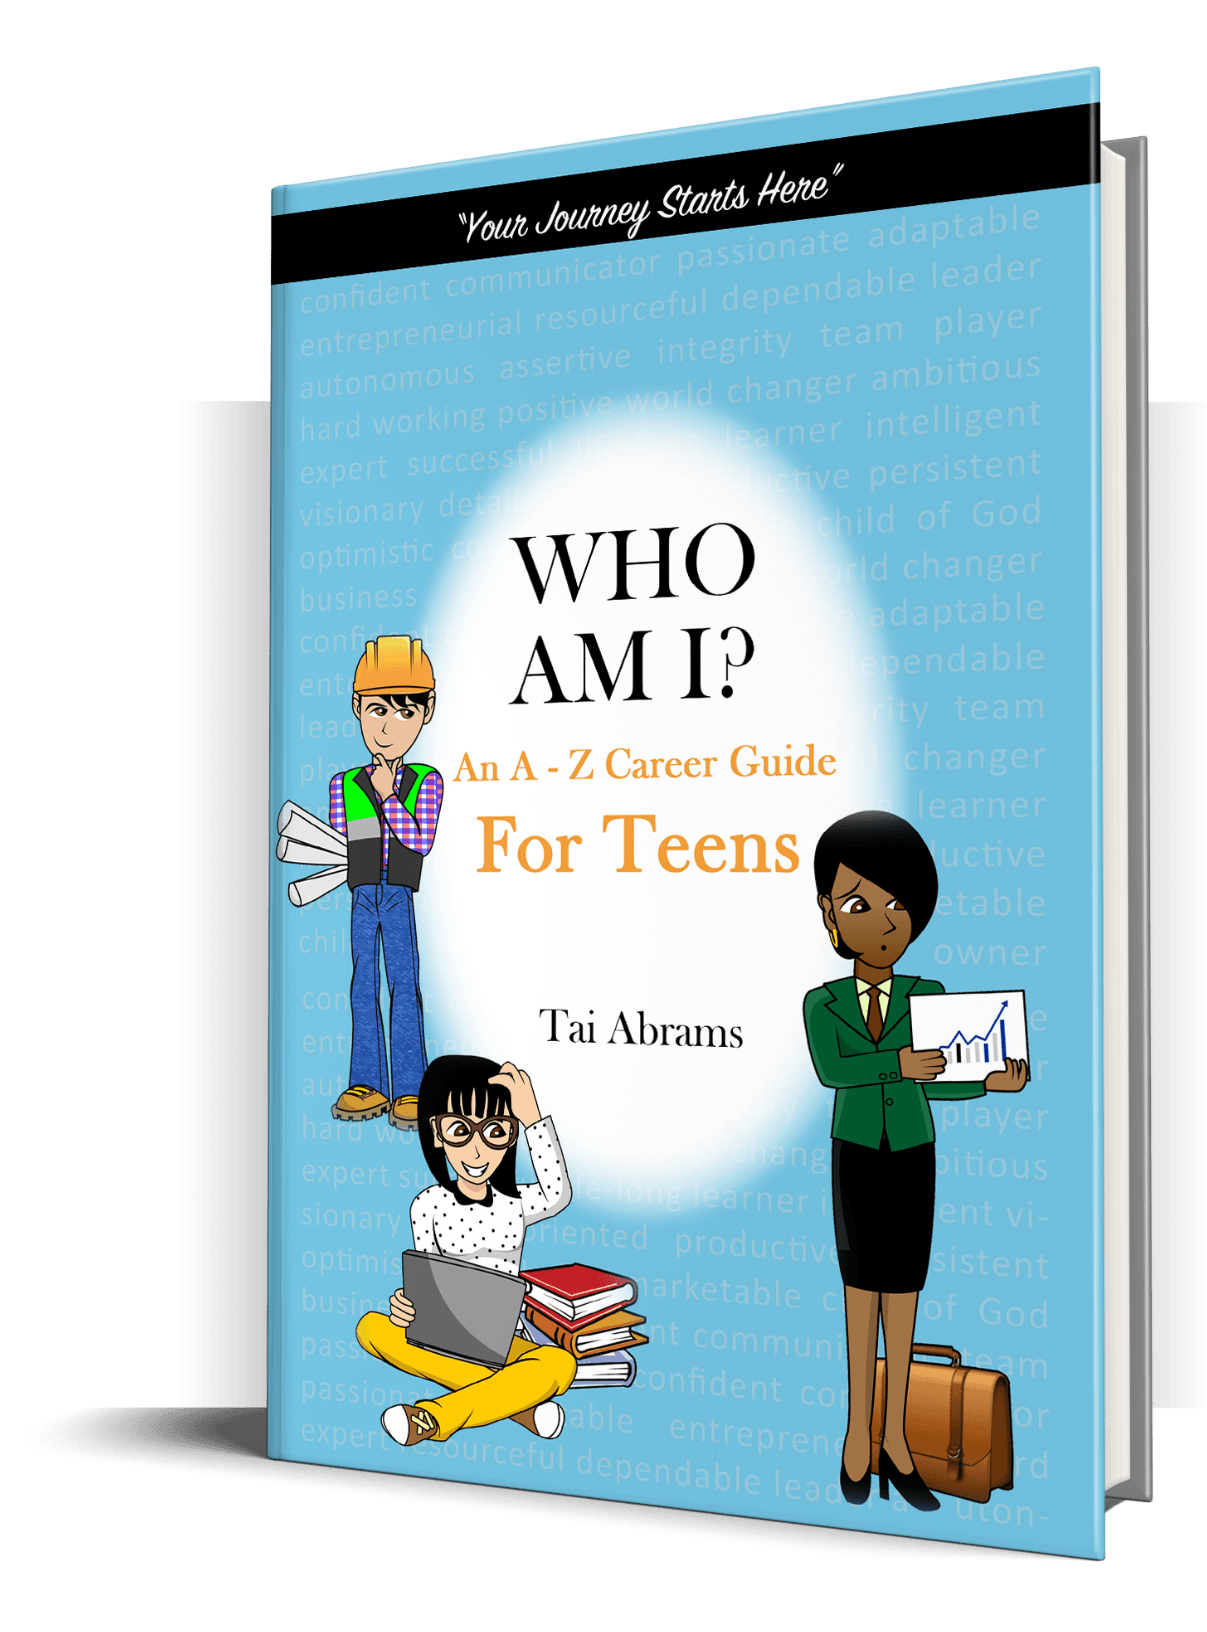 WHO AM I? An A - Z Career Guide For Teens